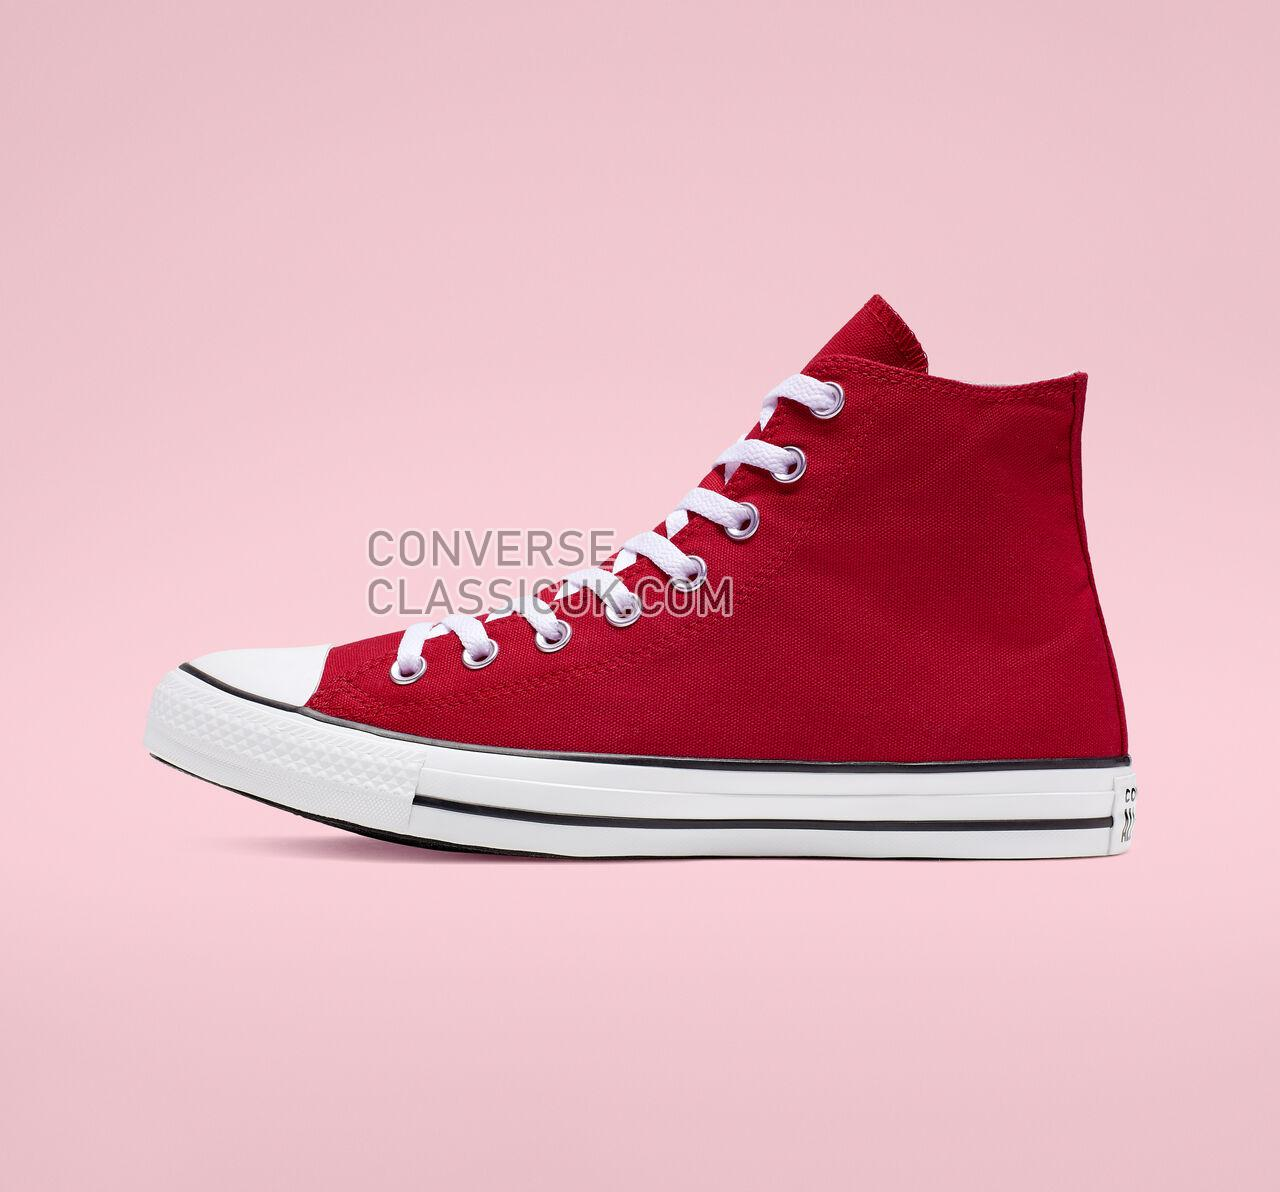 Converse Chuck Taylor All Star Oversized Logo High Top Mens Womens Unisex 165695C Enamel Red/White/Black Shoes